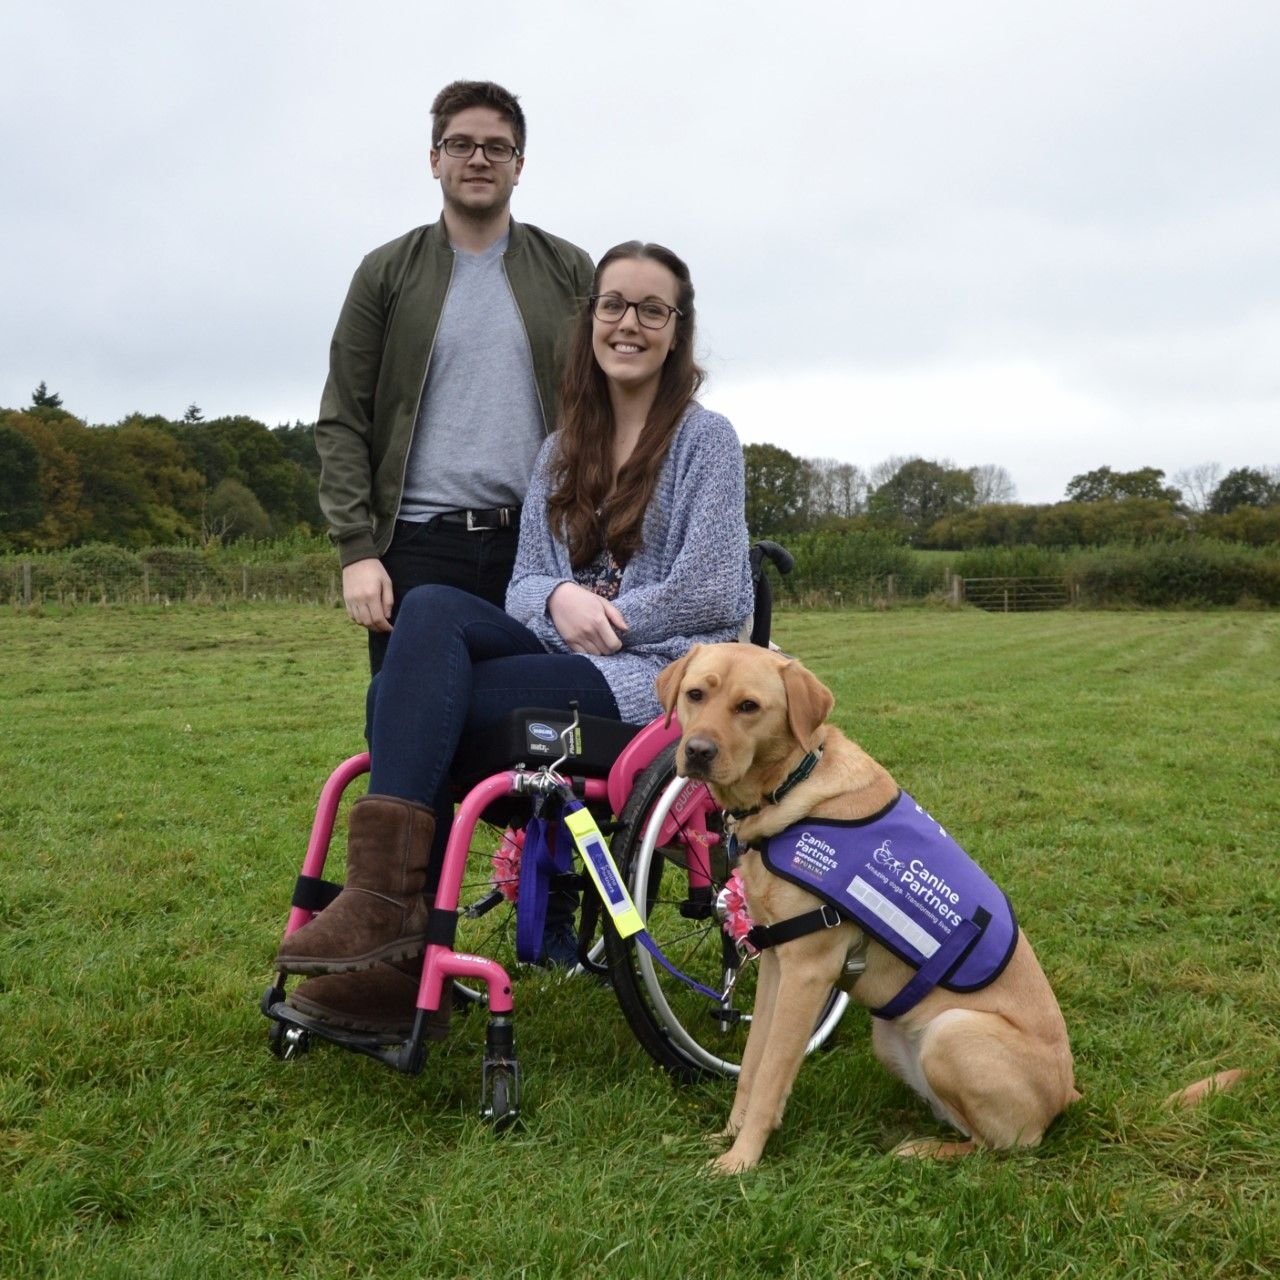 Picture of a man standing and a lady using a wheelchair, looking happy with their dog by their side.